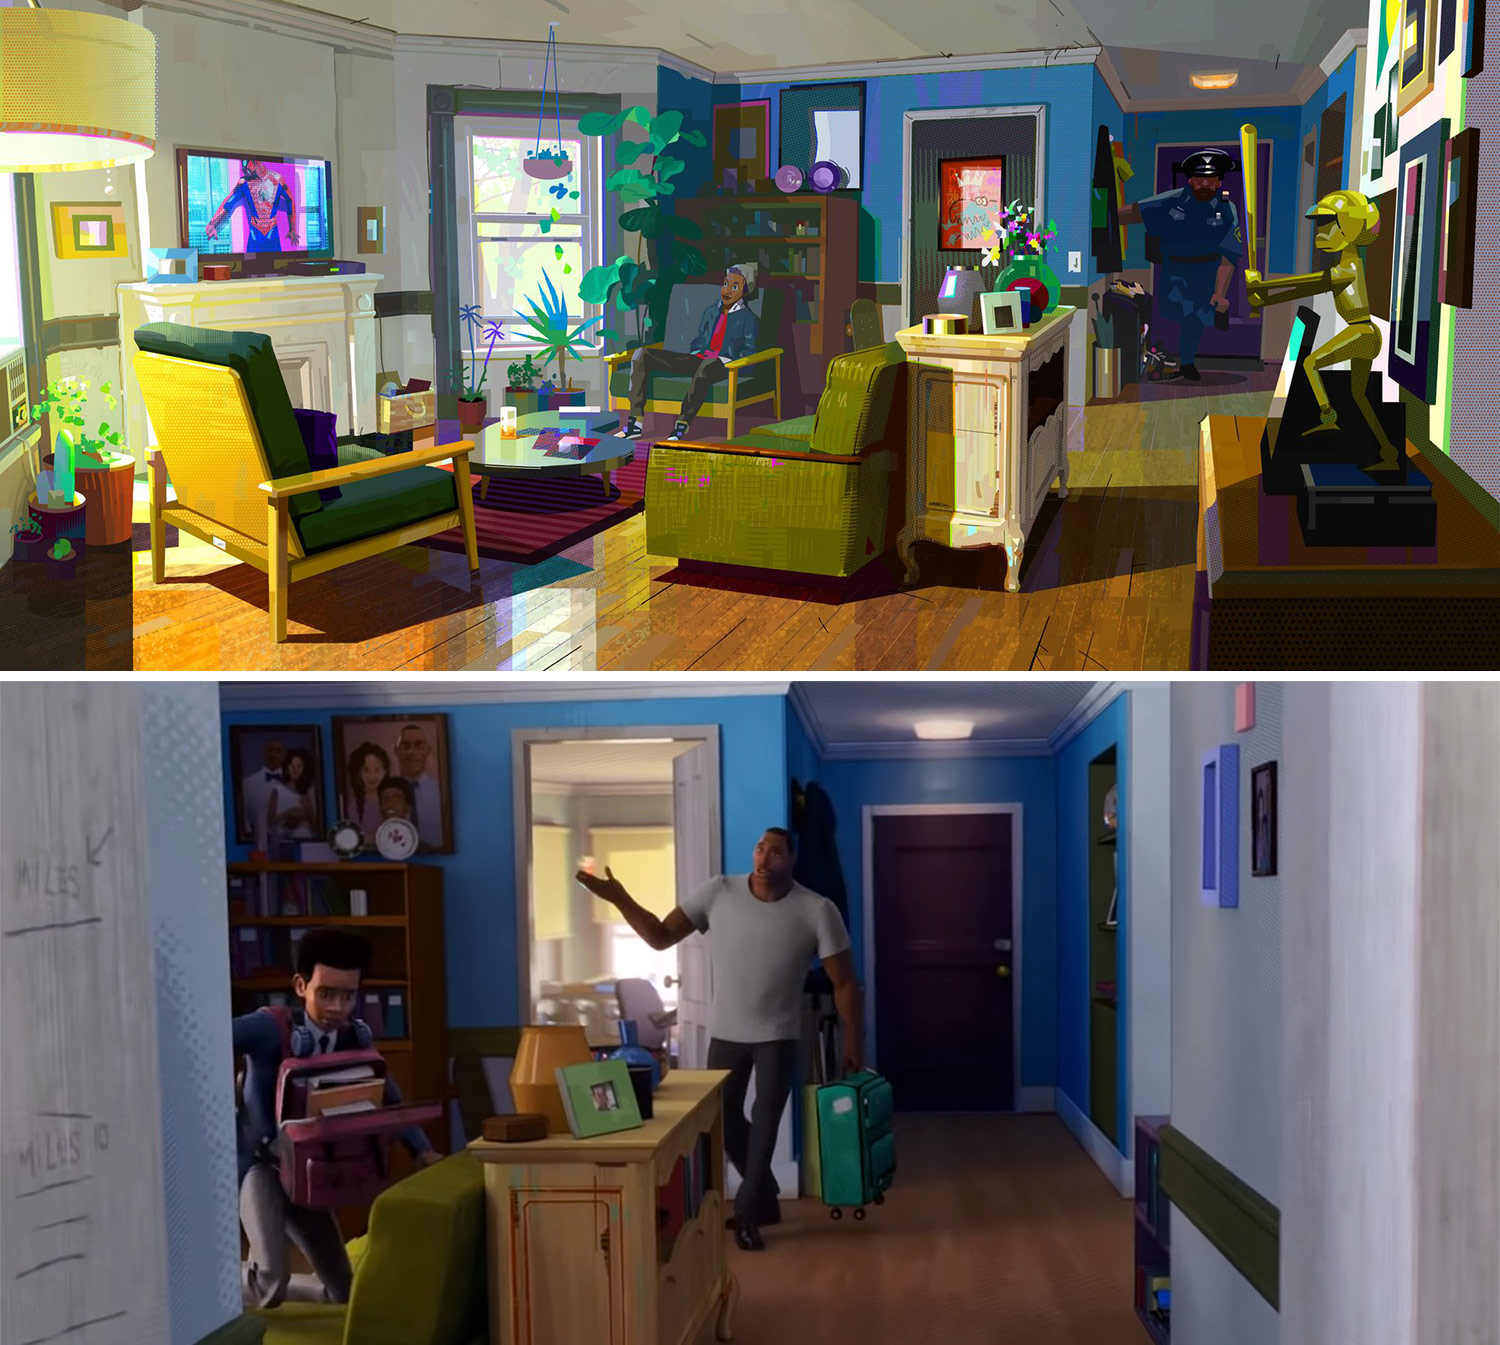 Concept art of Miles Morales' home by Peter Chan (top) and finished film still (bottom) emphasize warmth through vibrant colors.